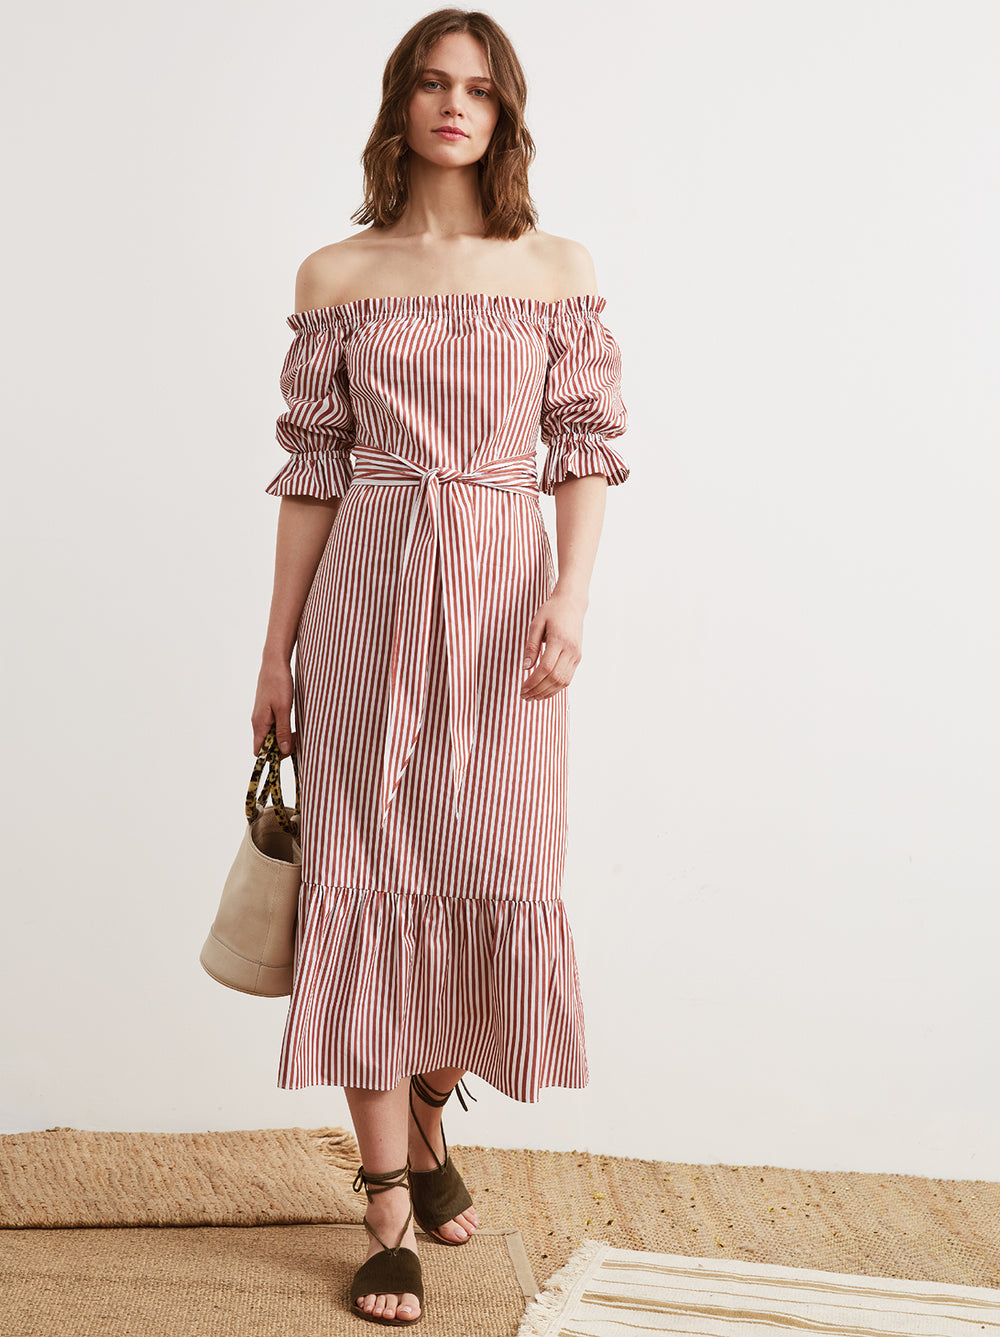 Cora Striped Cotton Bardot Summer Dress by KITRI Studio